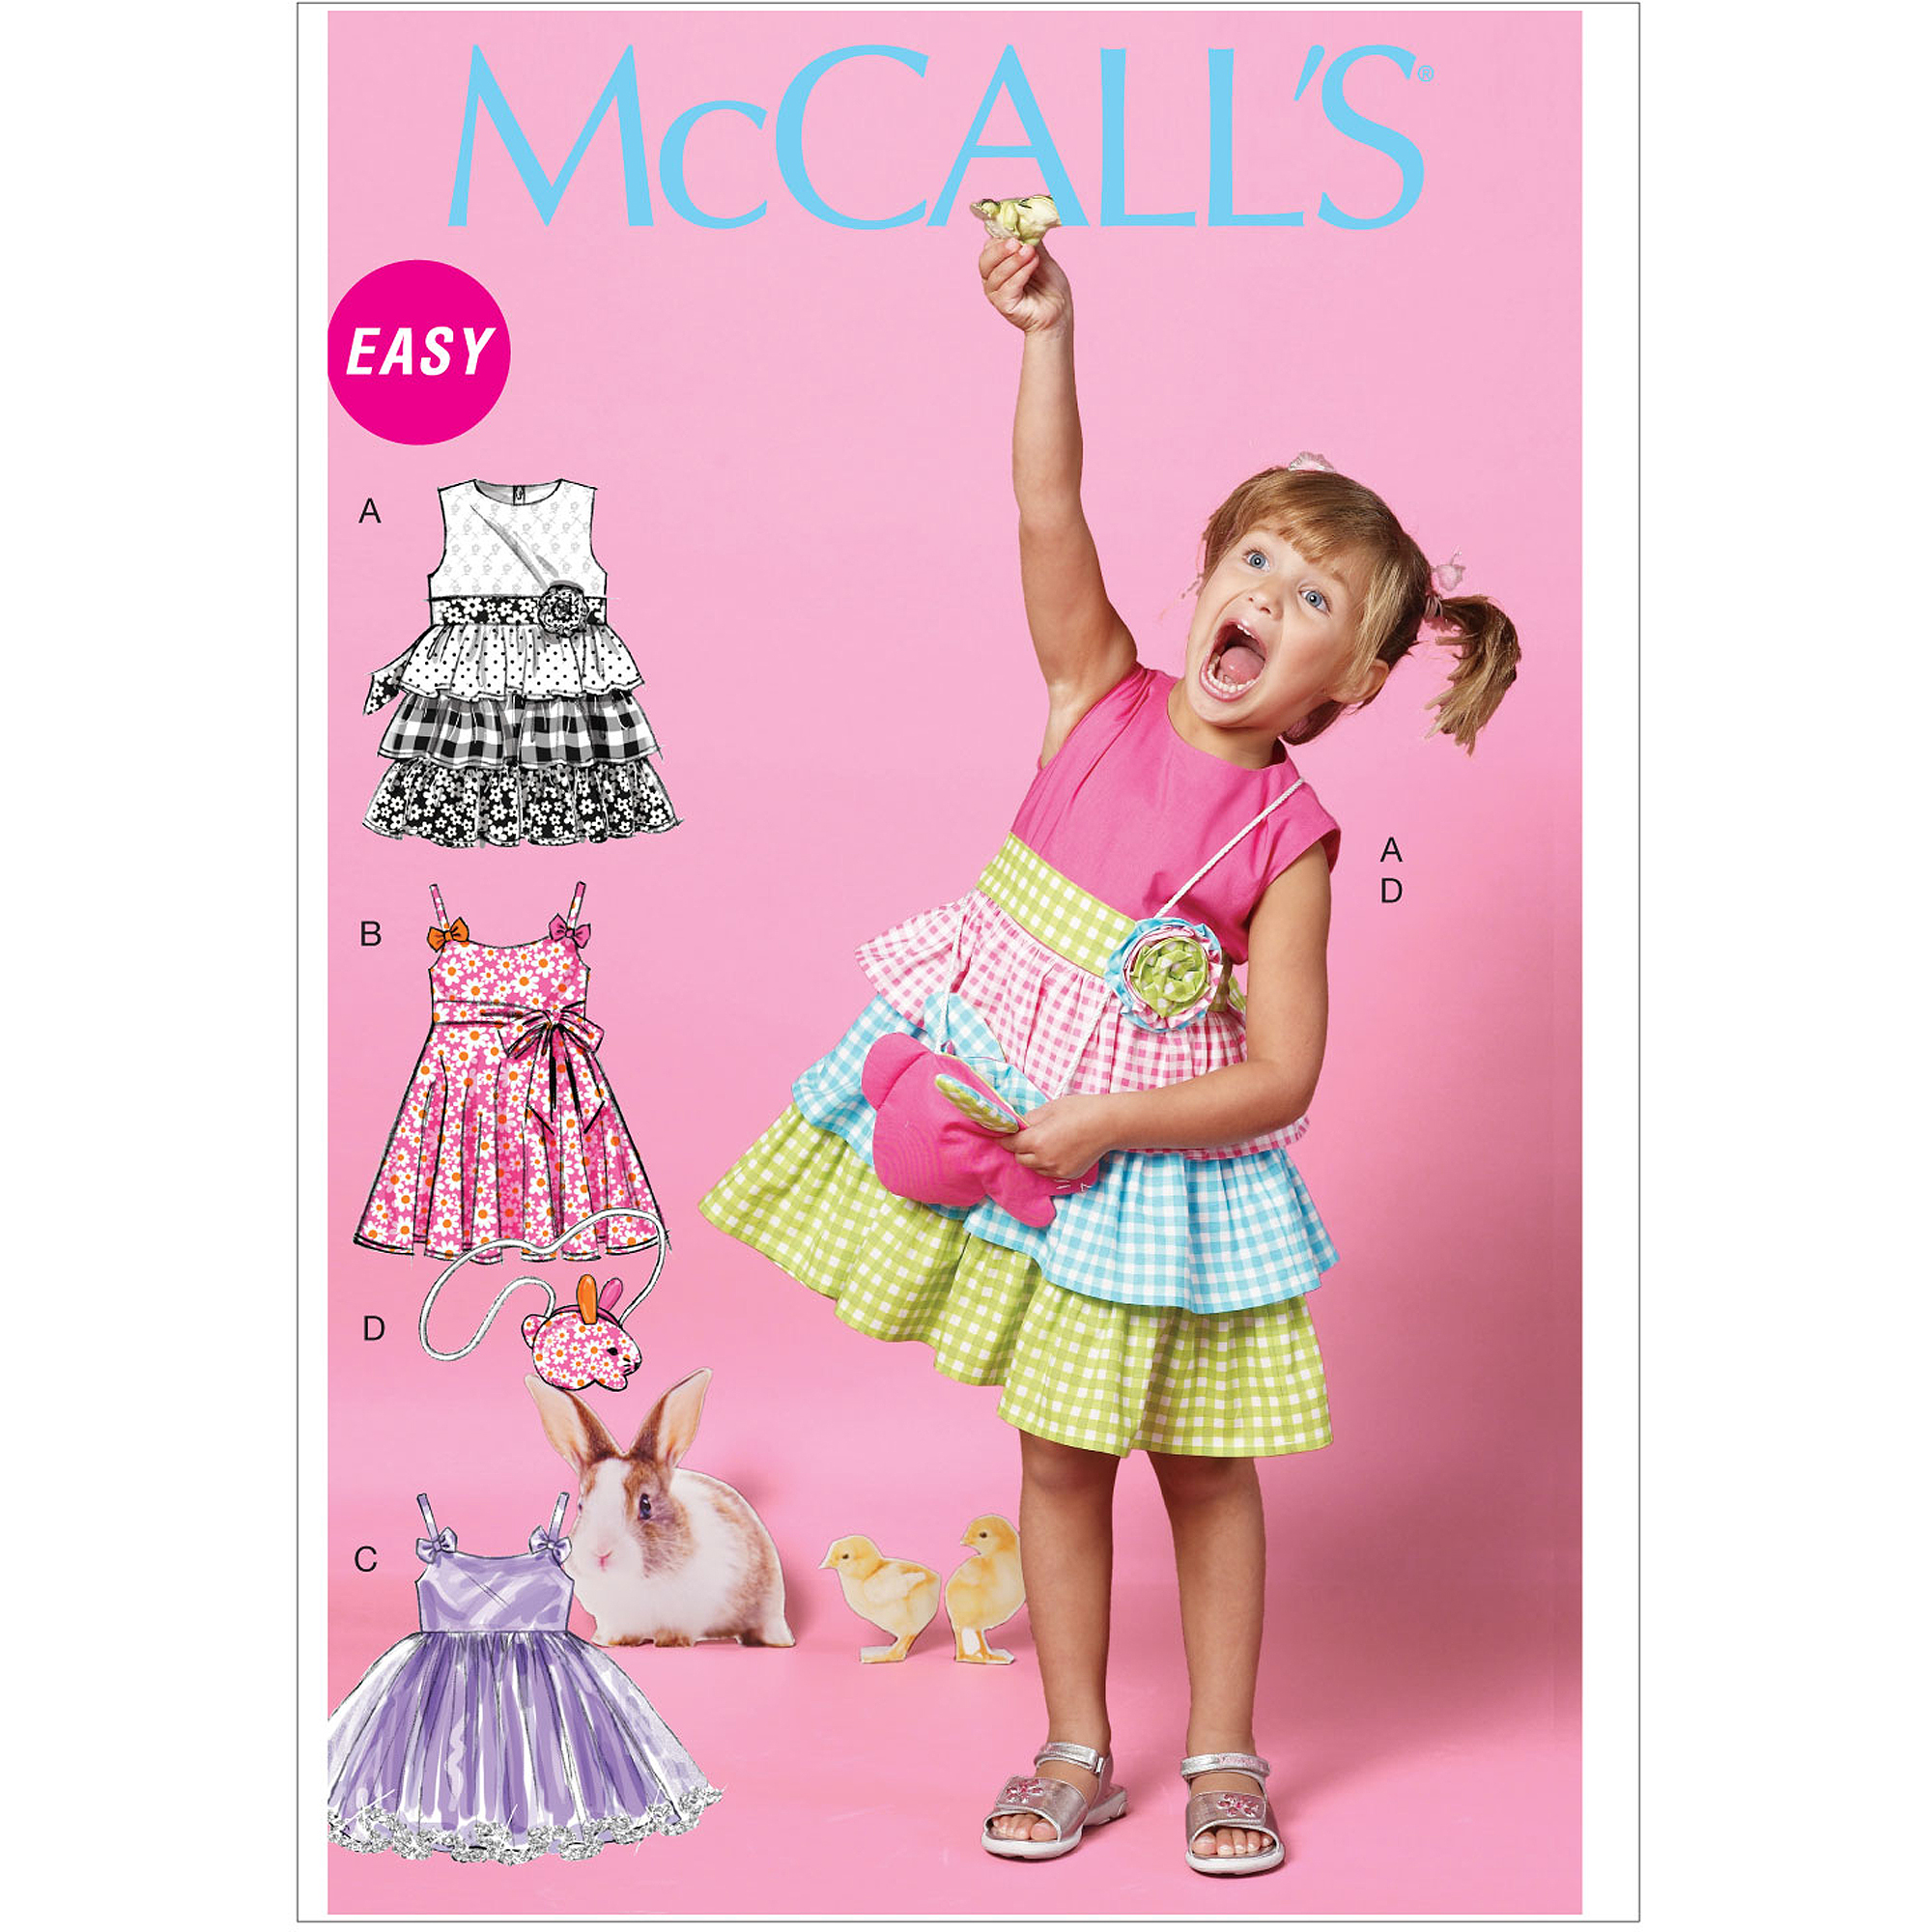 McCall's Pattern Children's and Girls' Dresses, Belt and Bag, CL (6, 7, 8)